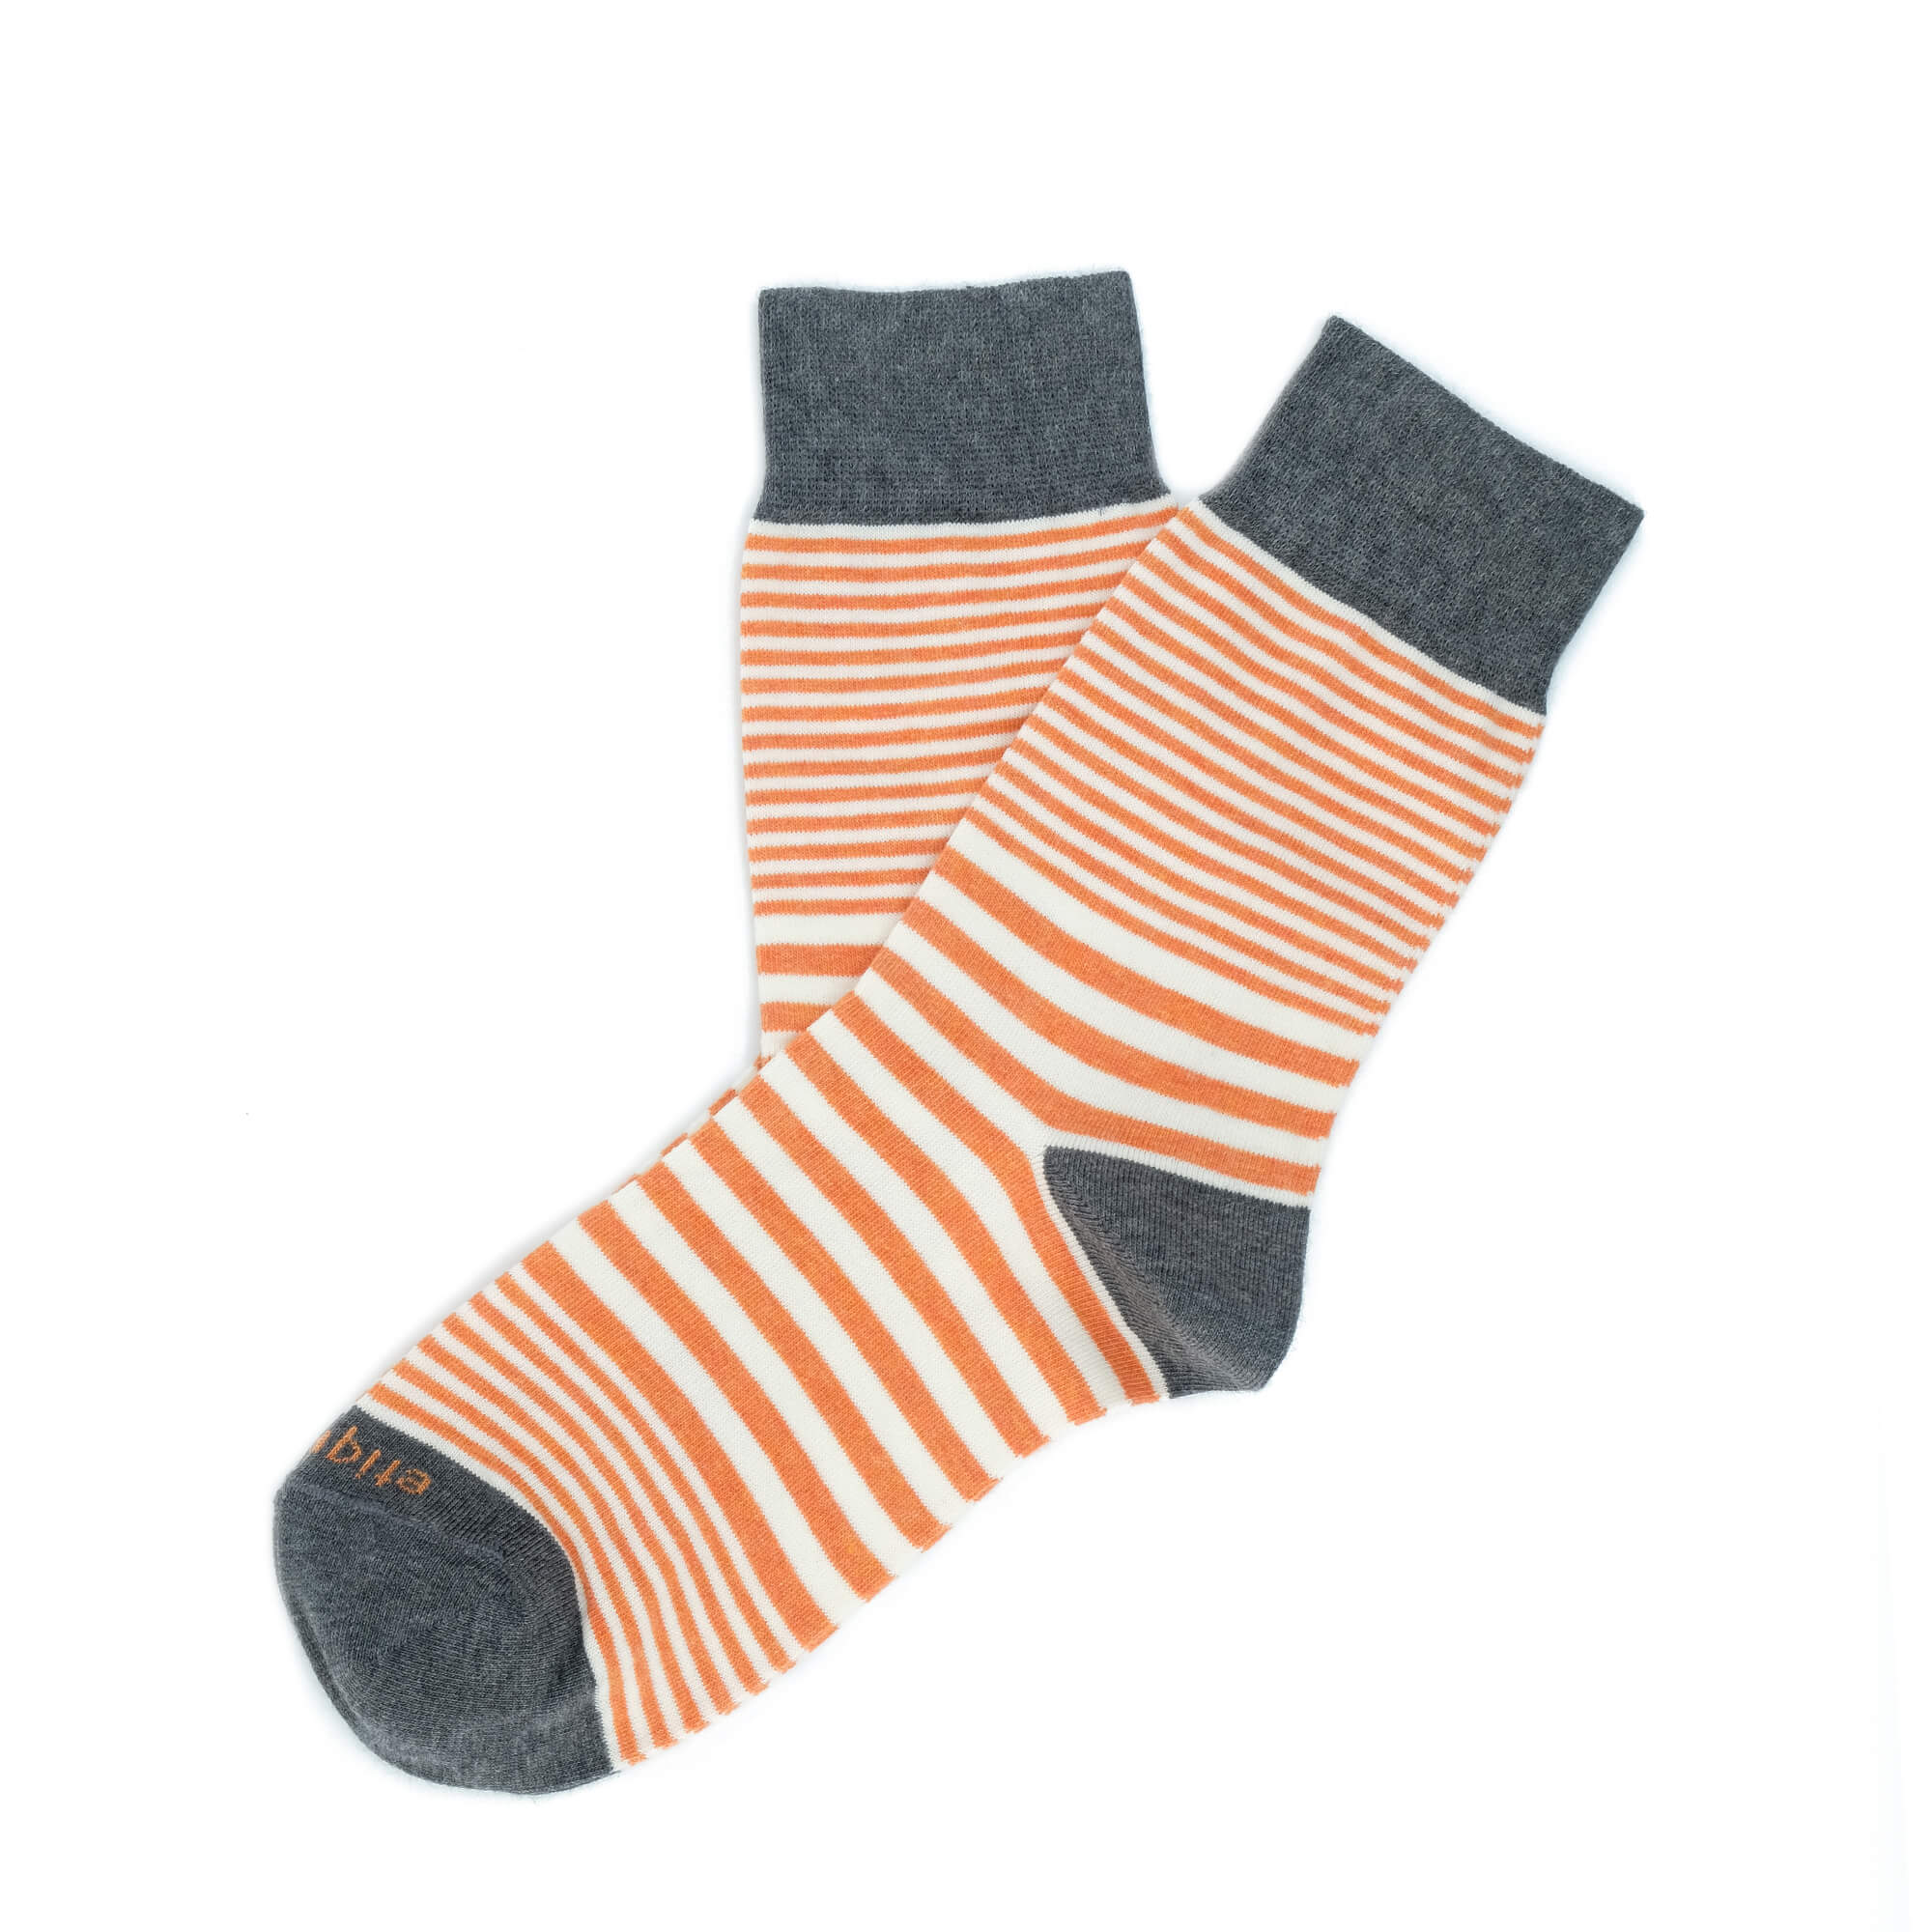 Womens Socks - Sailor Stripes Women's Socks - Orange⎪Etiquette Clothiers